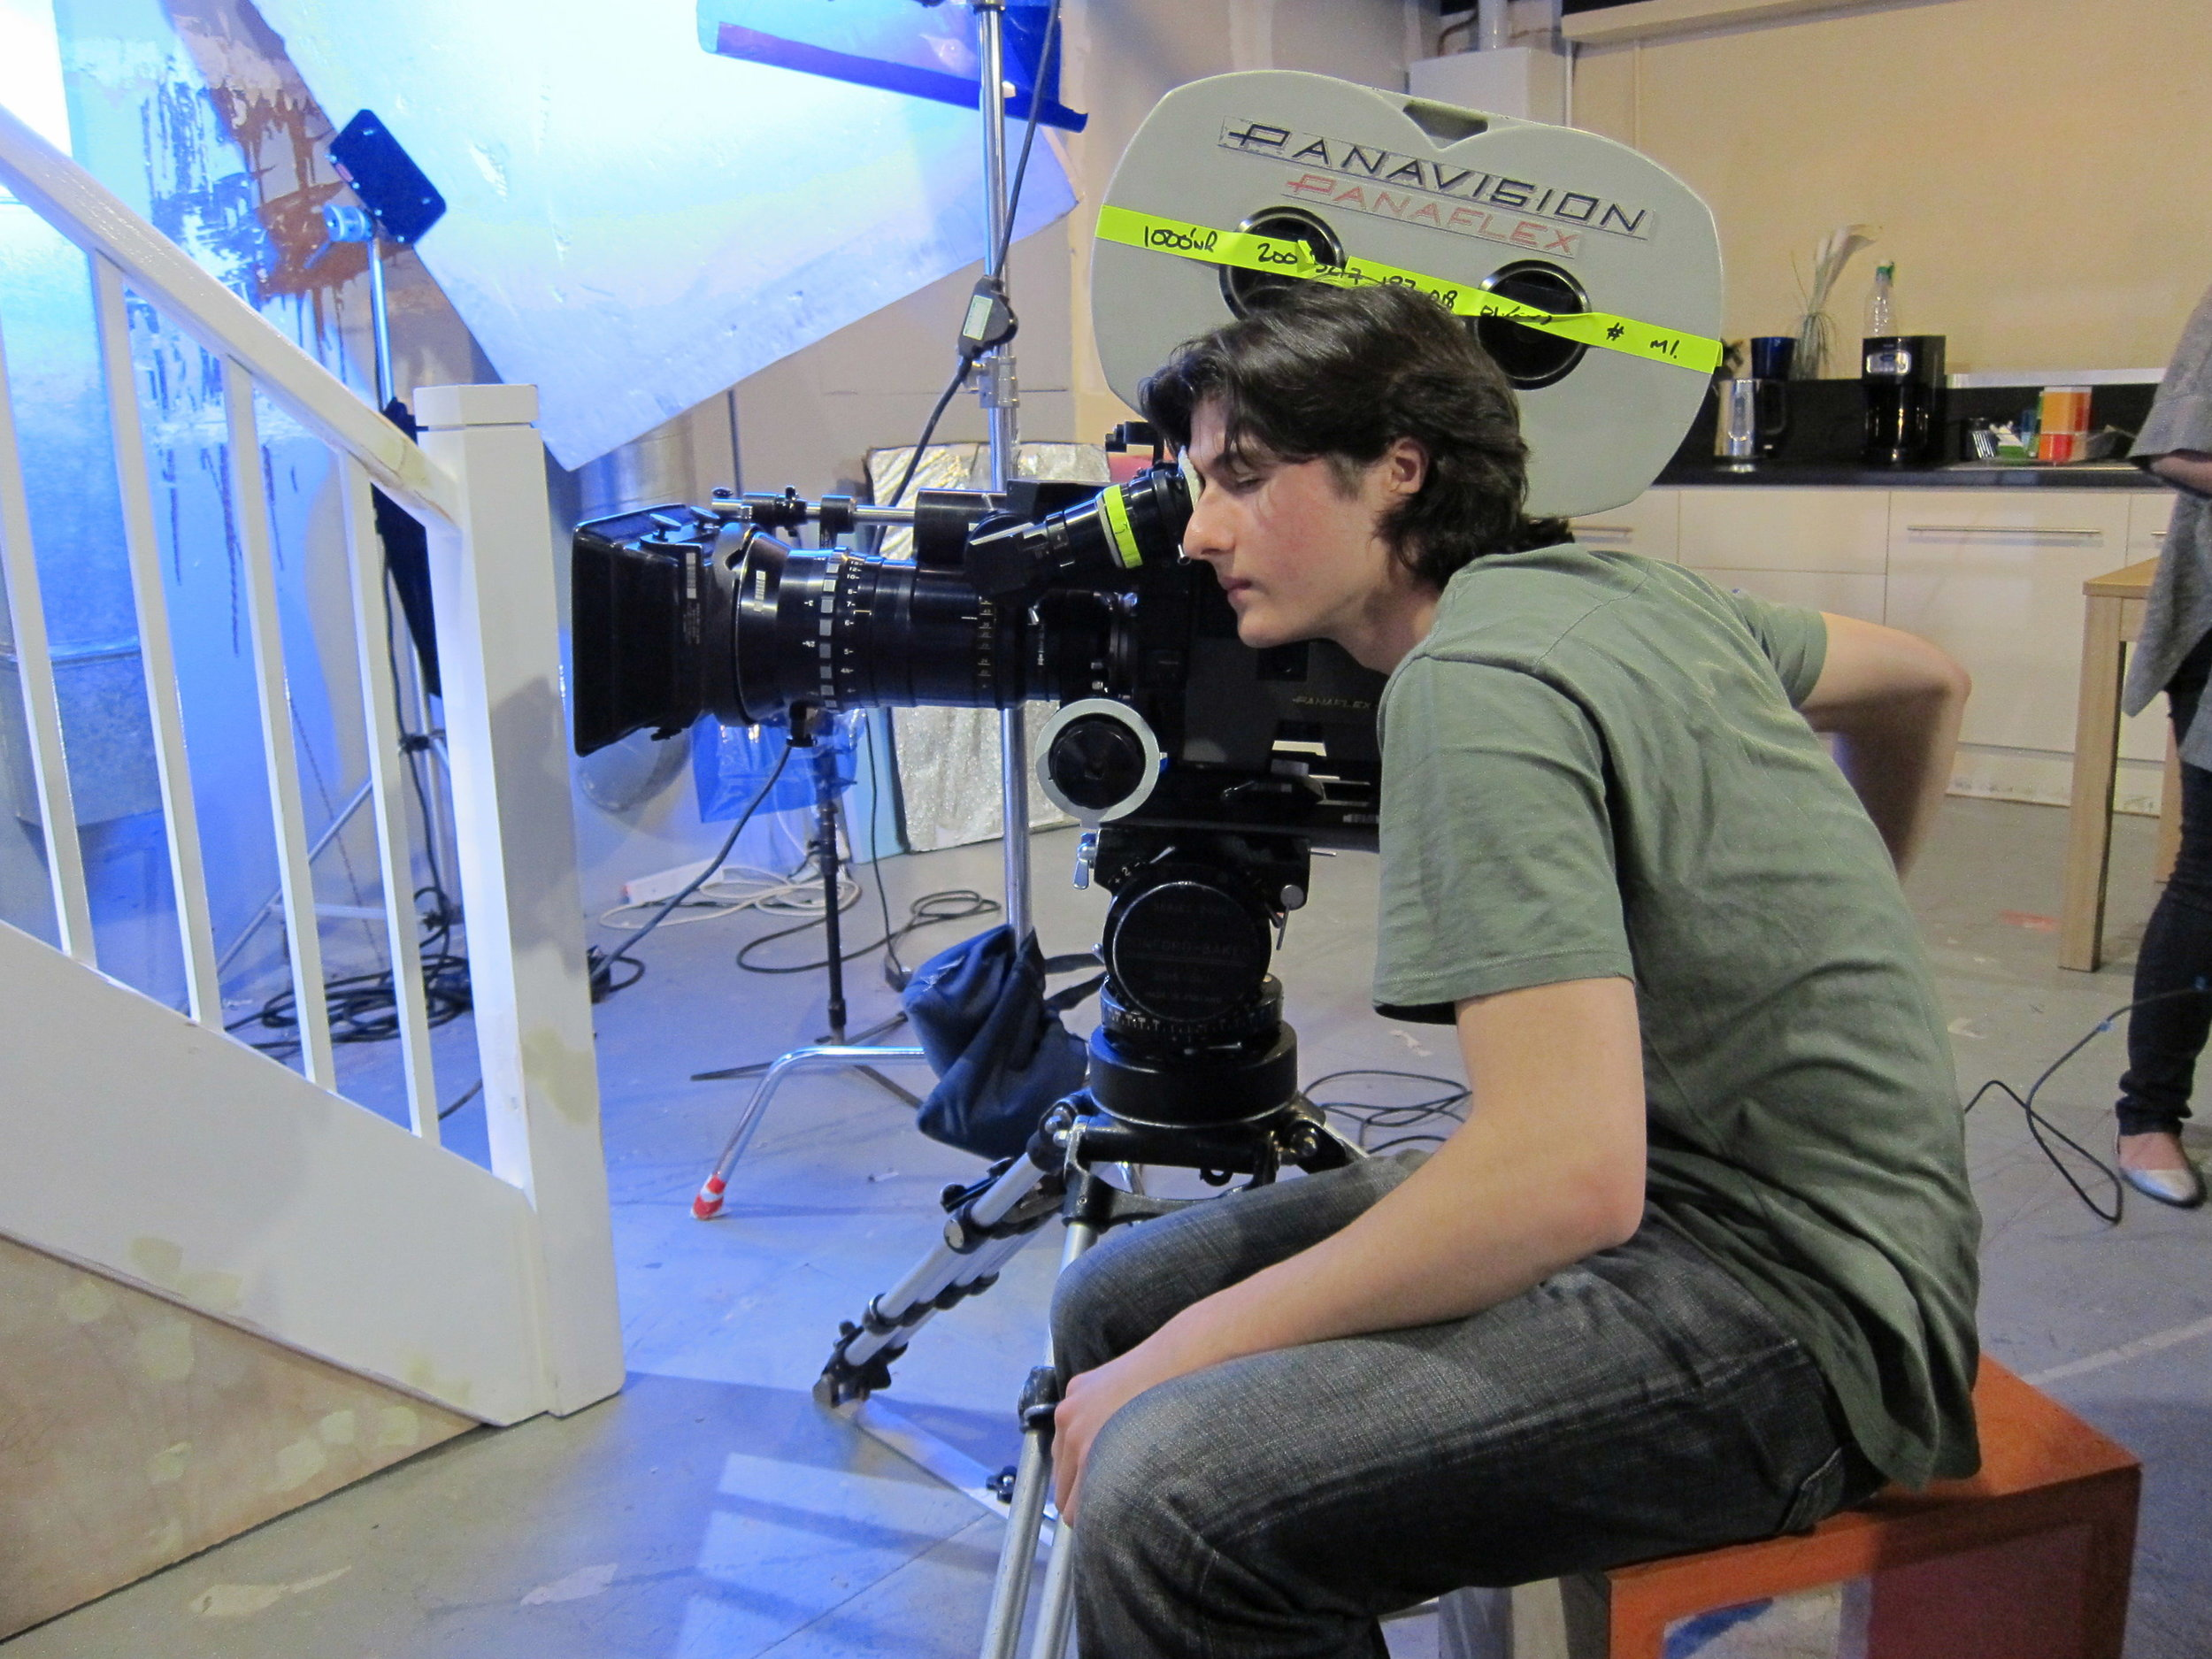 91% of our graduates find employment in the film industry -